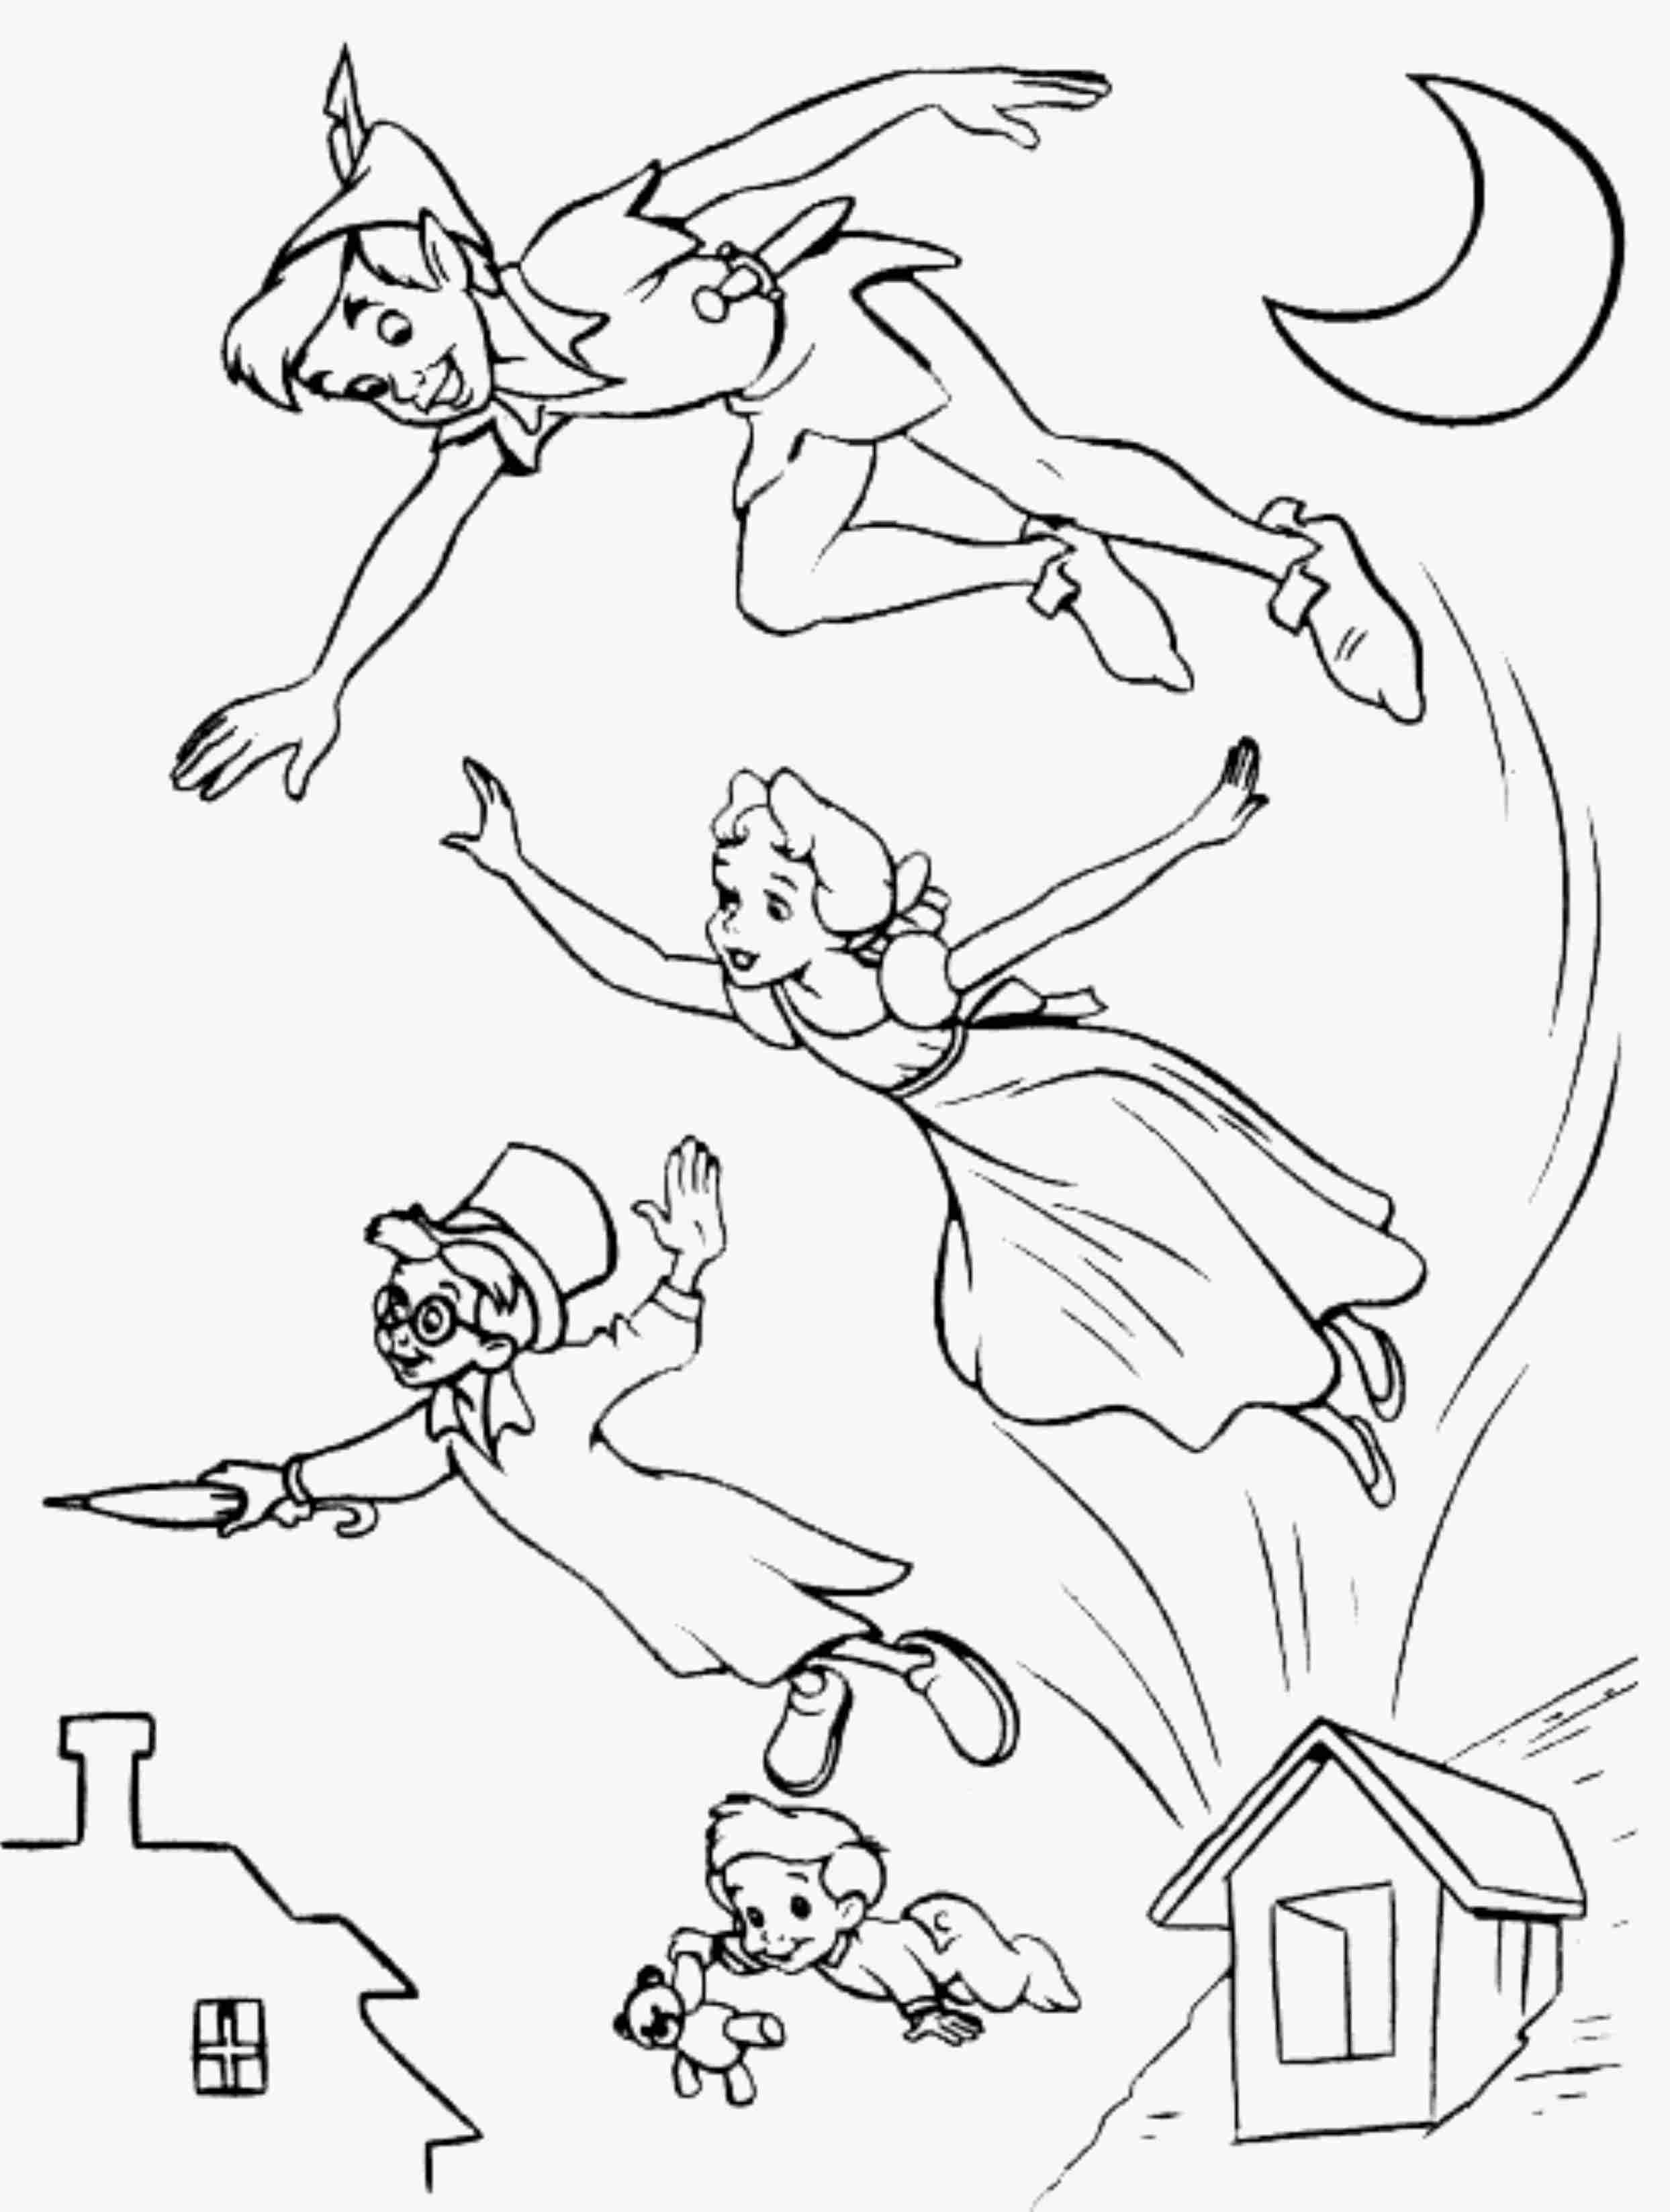 peter pan color free printable peter pan coloring pages for kids color peter pan 1 1